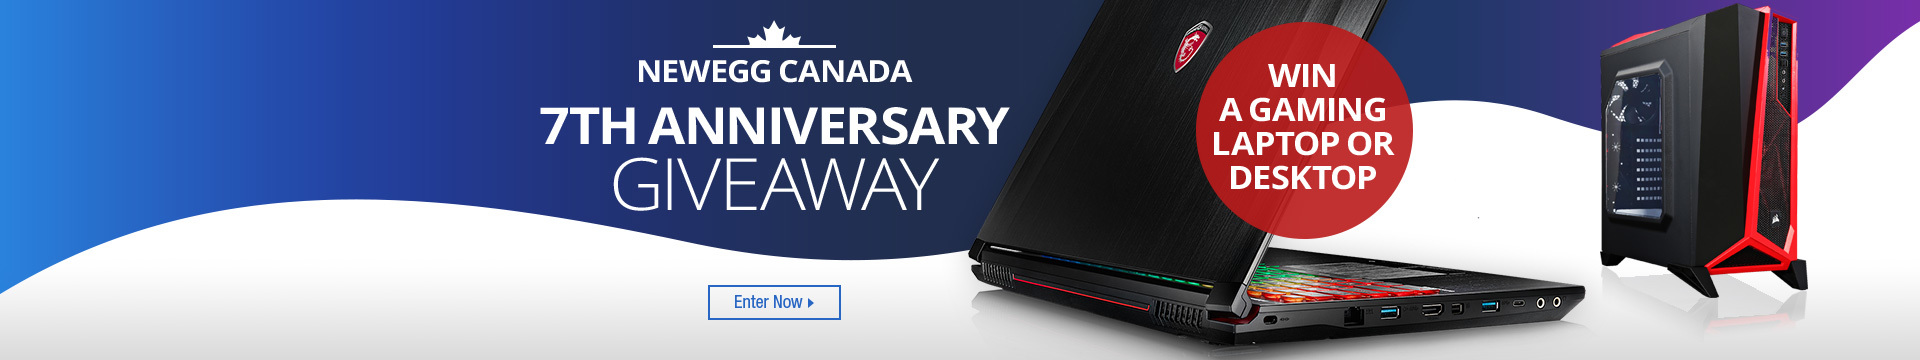 7th Anniversary Giveaway